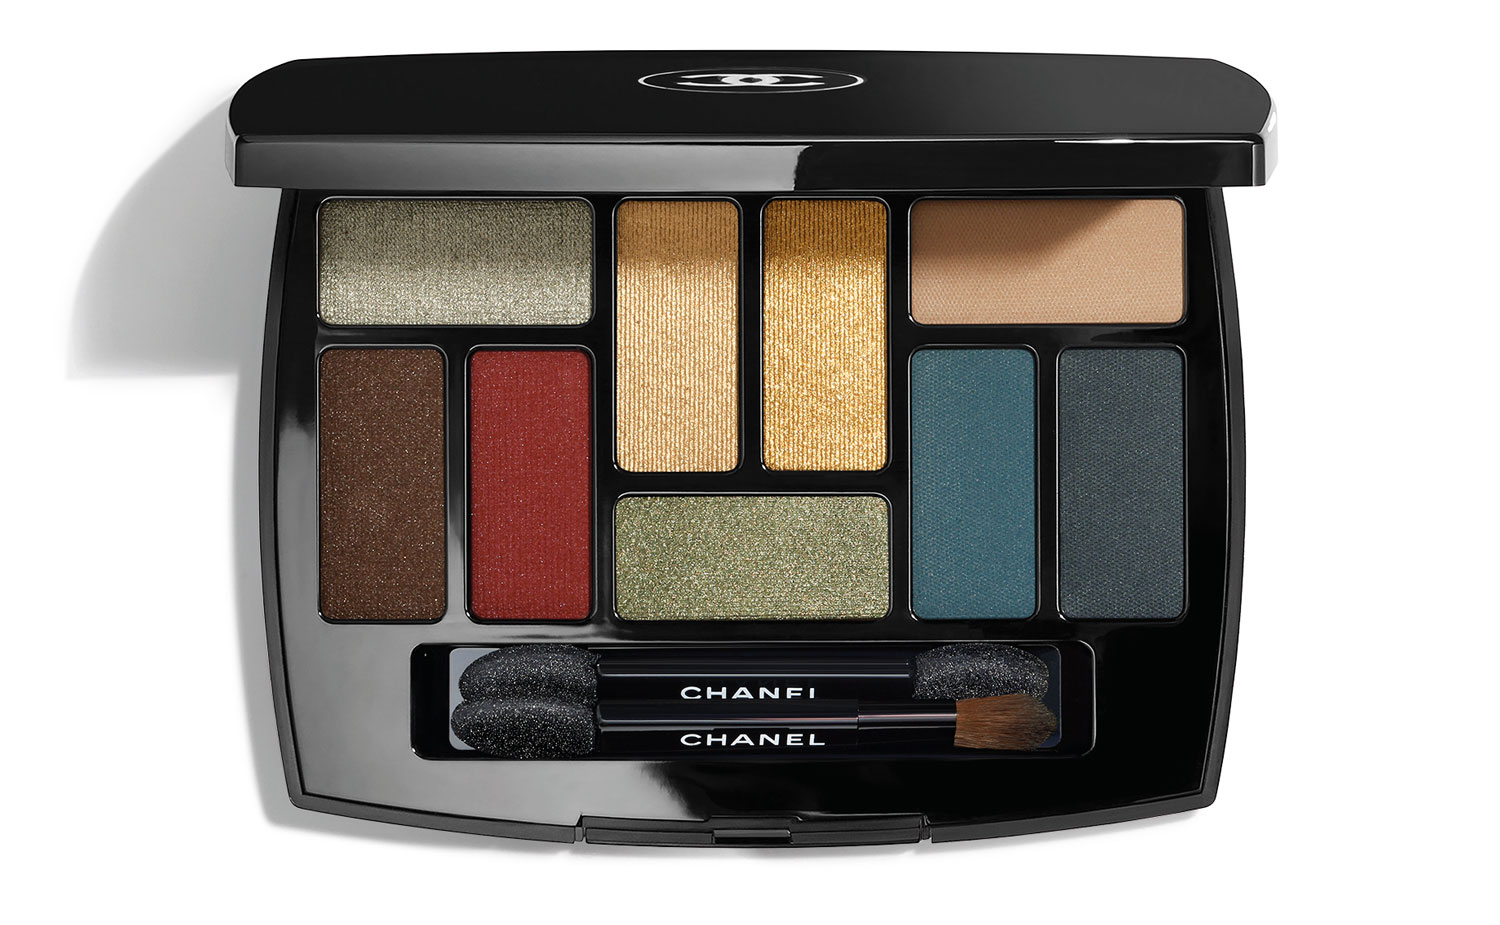 Chanel SS19 Make-up: Eyeshadow Palette